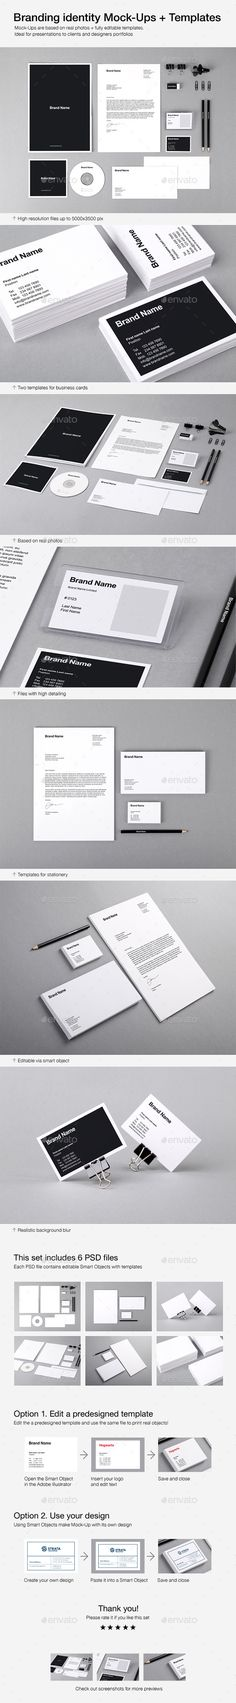 branding identity mock ups and templates by vitalliy mock ups are based on real photos fully editable templates ideal for presentations to clients and